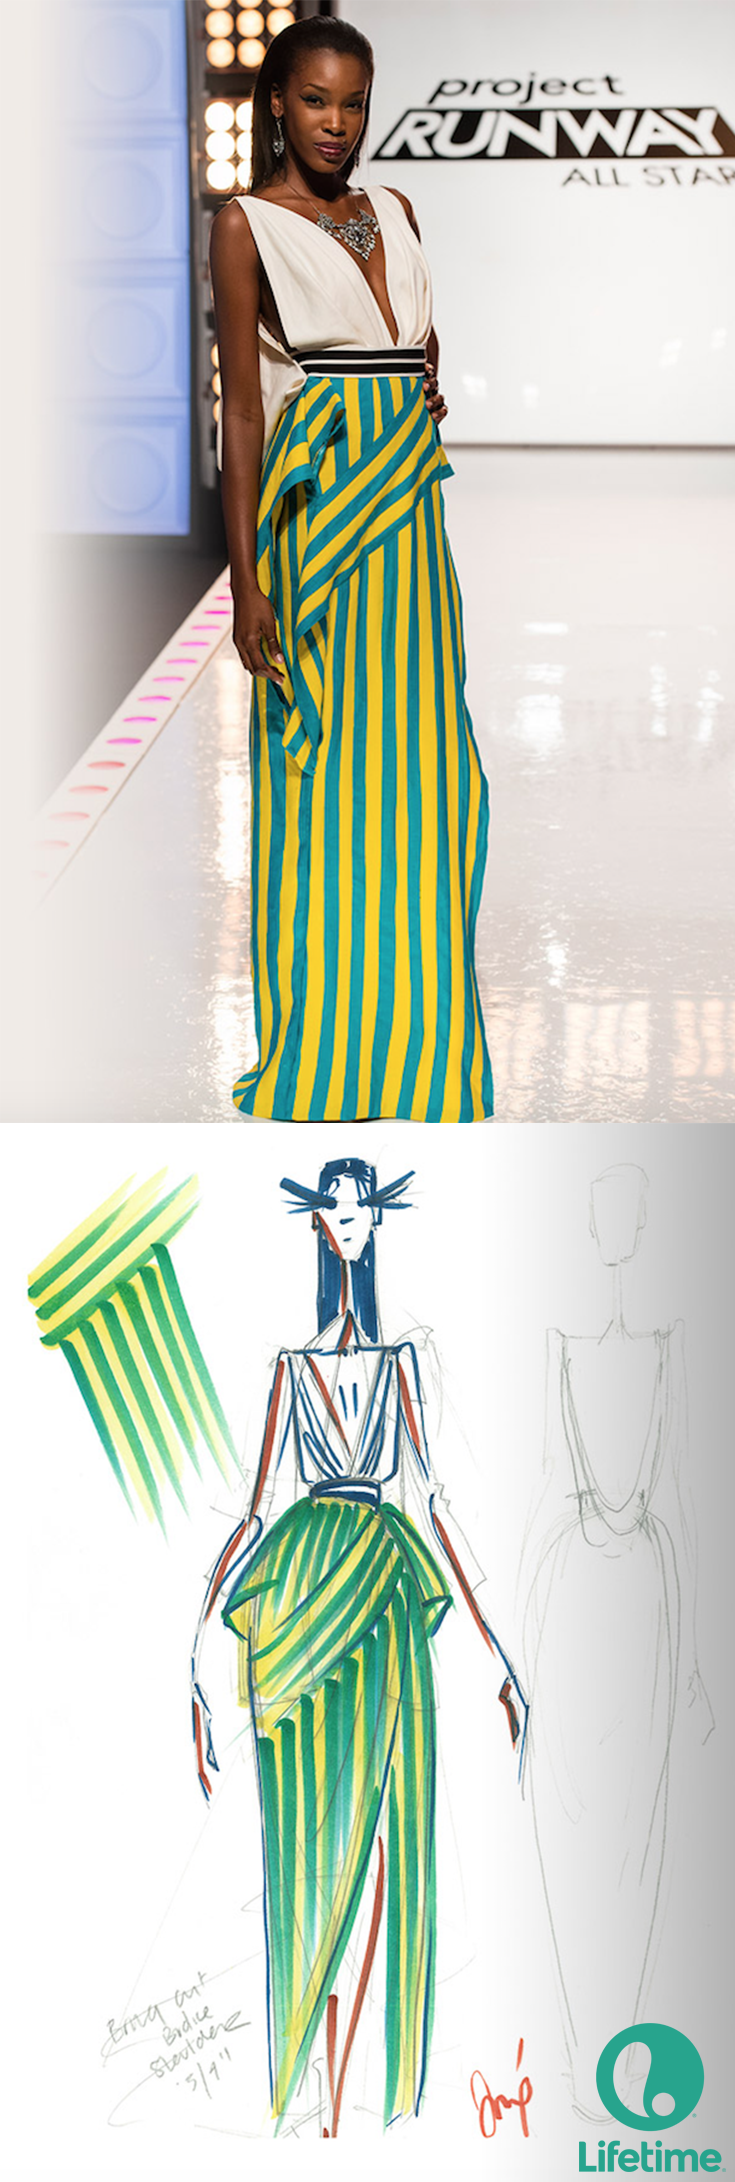 Dom's design and sketch on Project Runway All Stars were both beautiful!